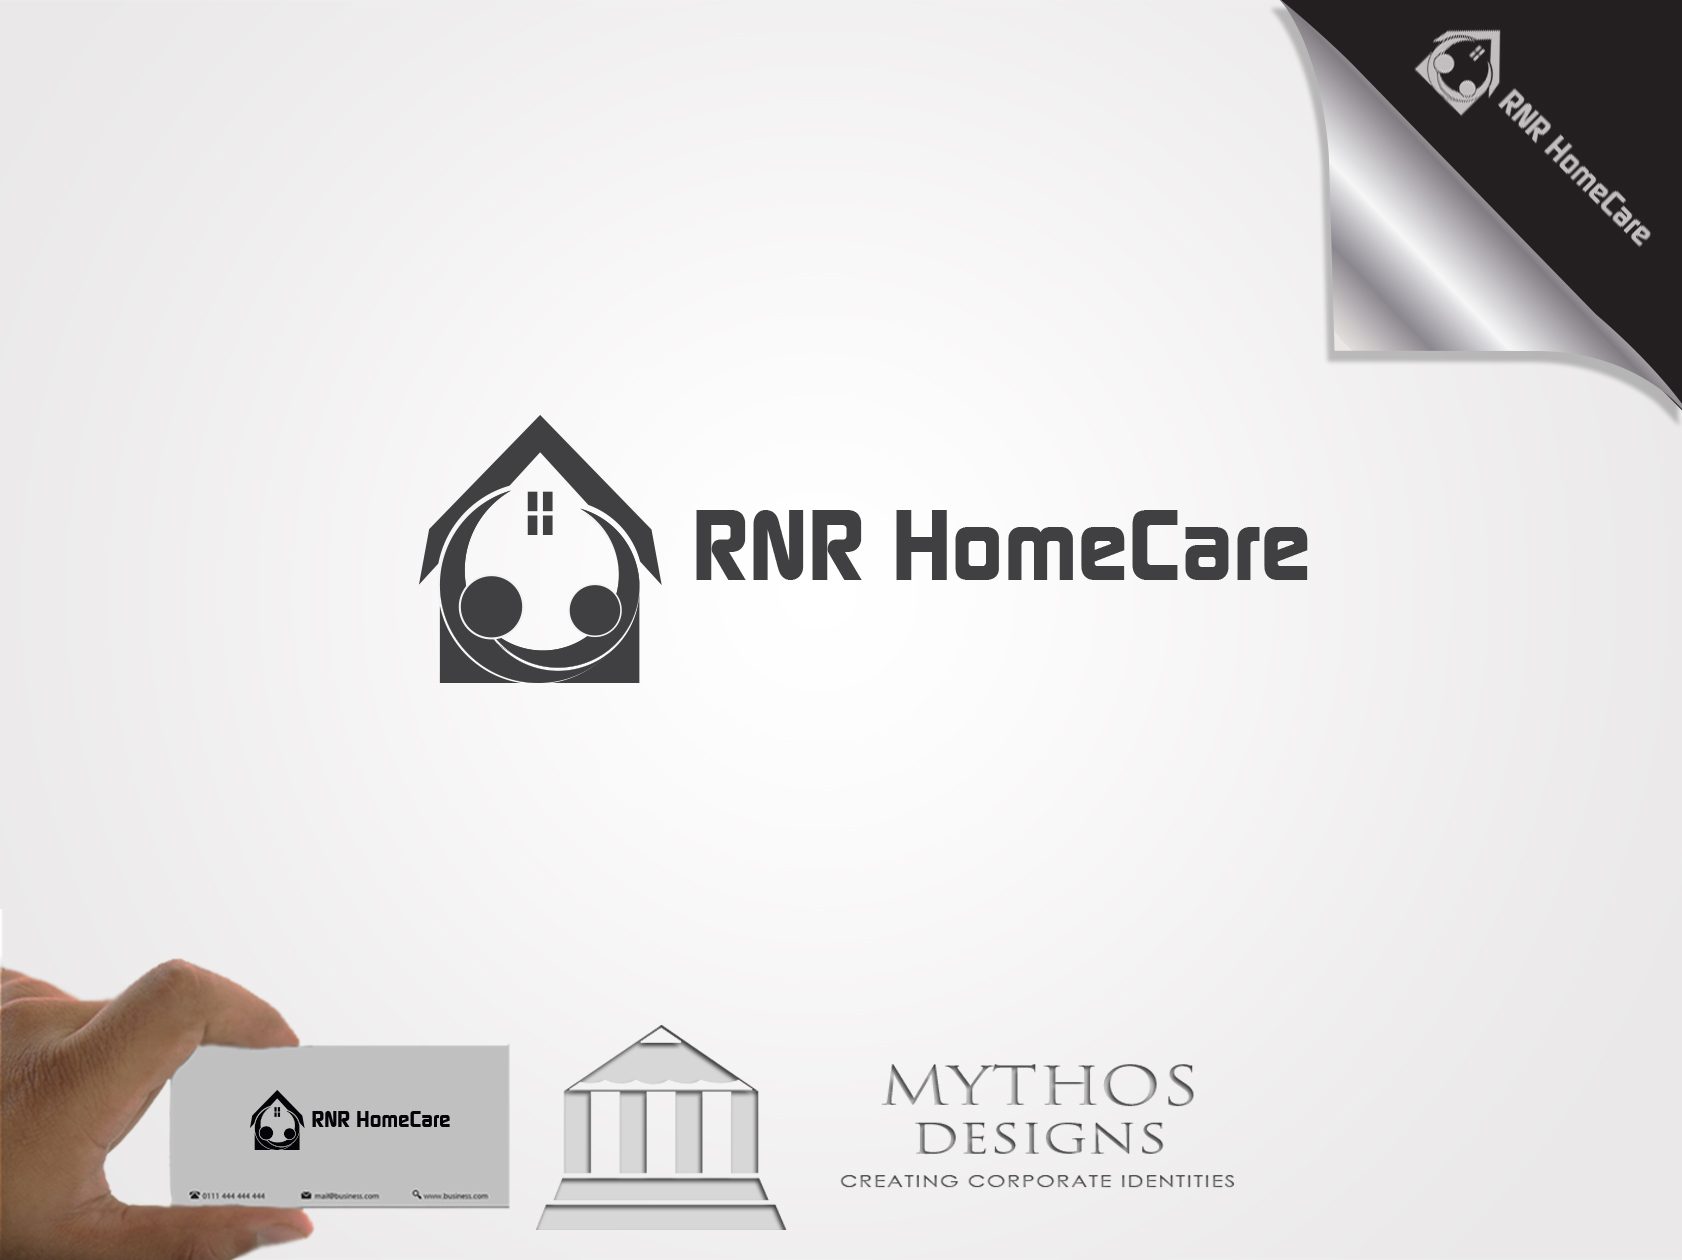 Logo Design by Mythos Designs - Entry No. 84 in the Logo Design Contest Imaginative Logo Design for RNR HomeCare.